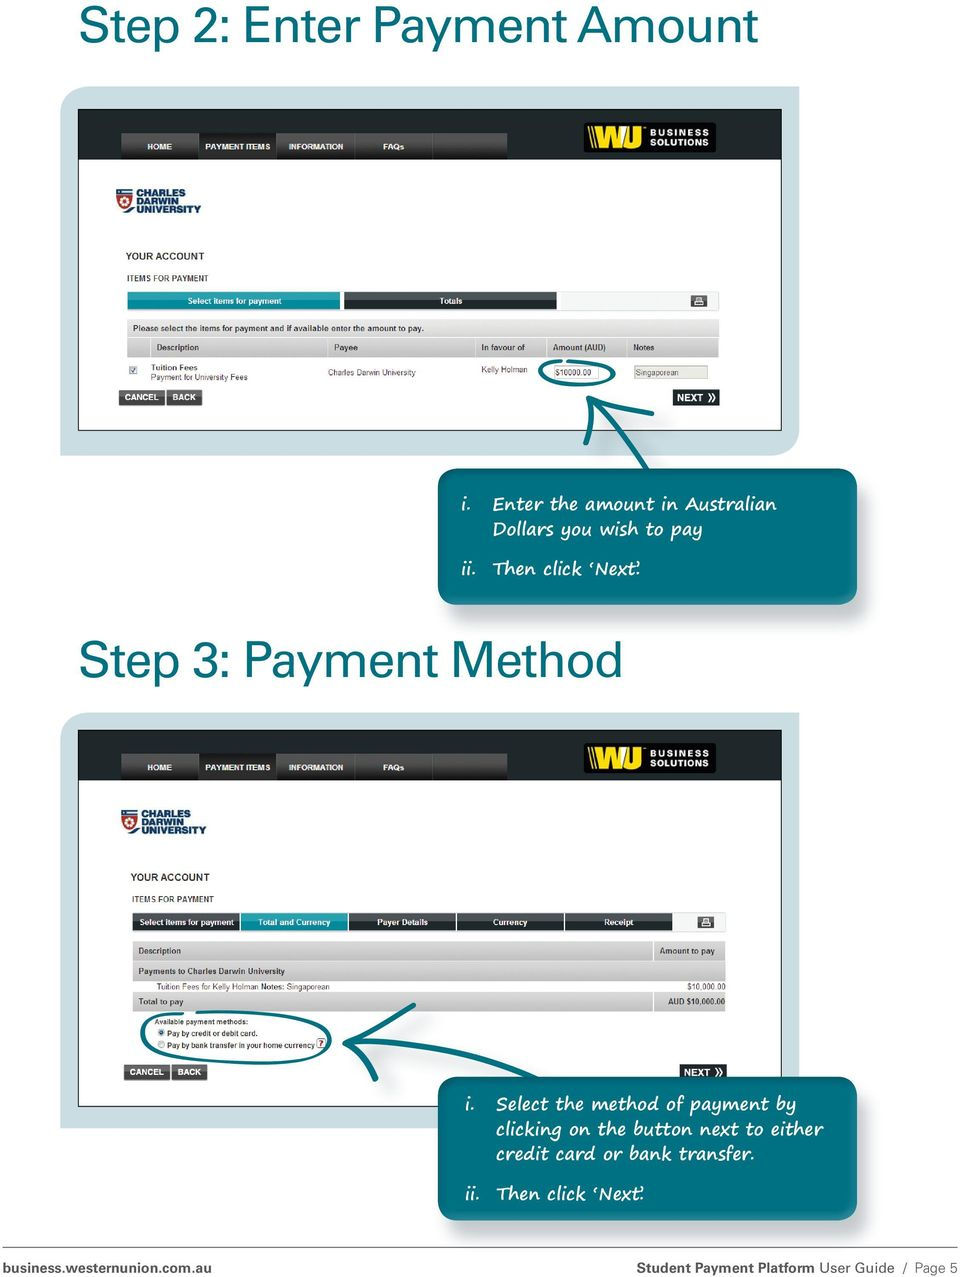 Step 3: Payment Method i.